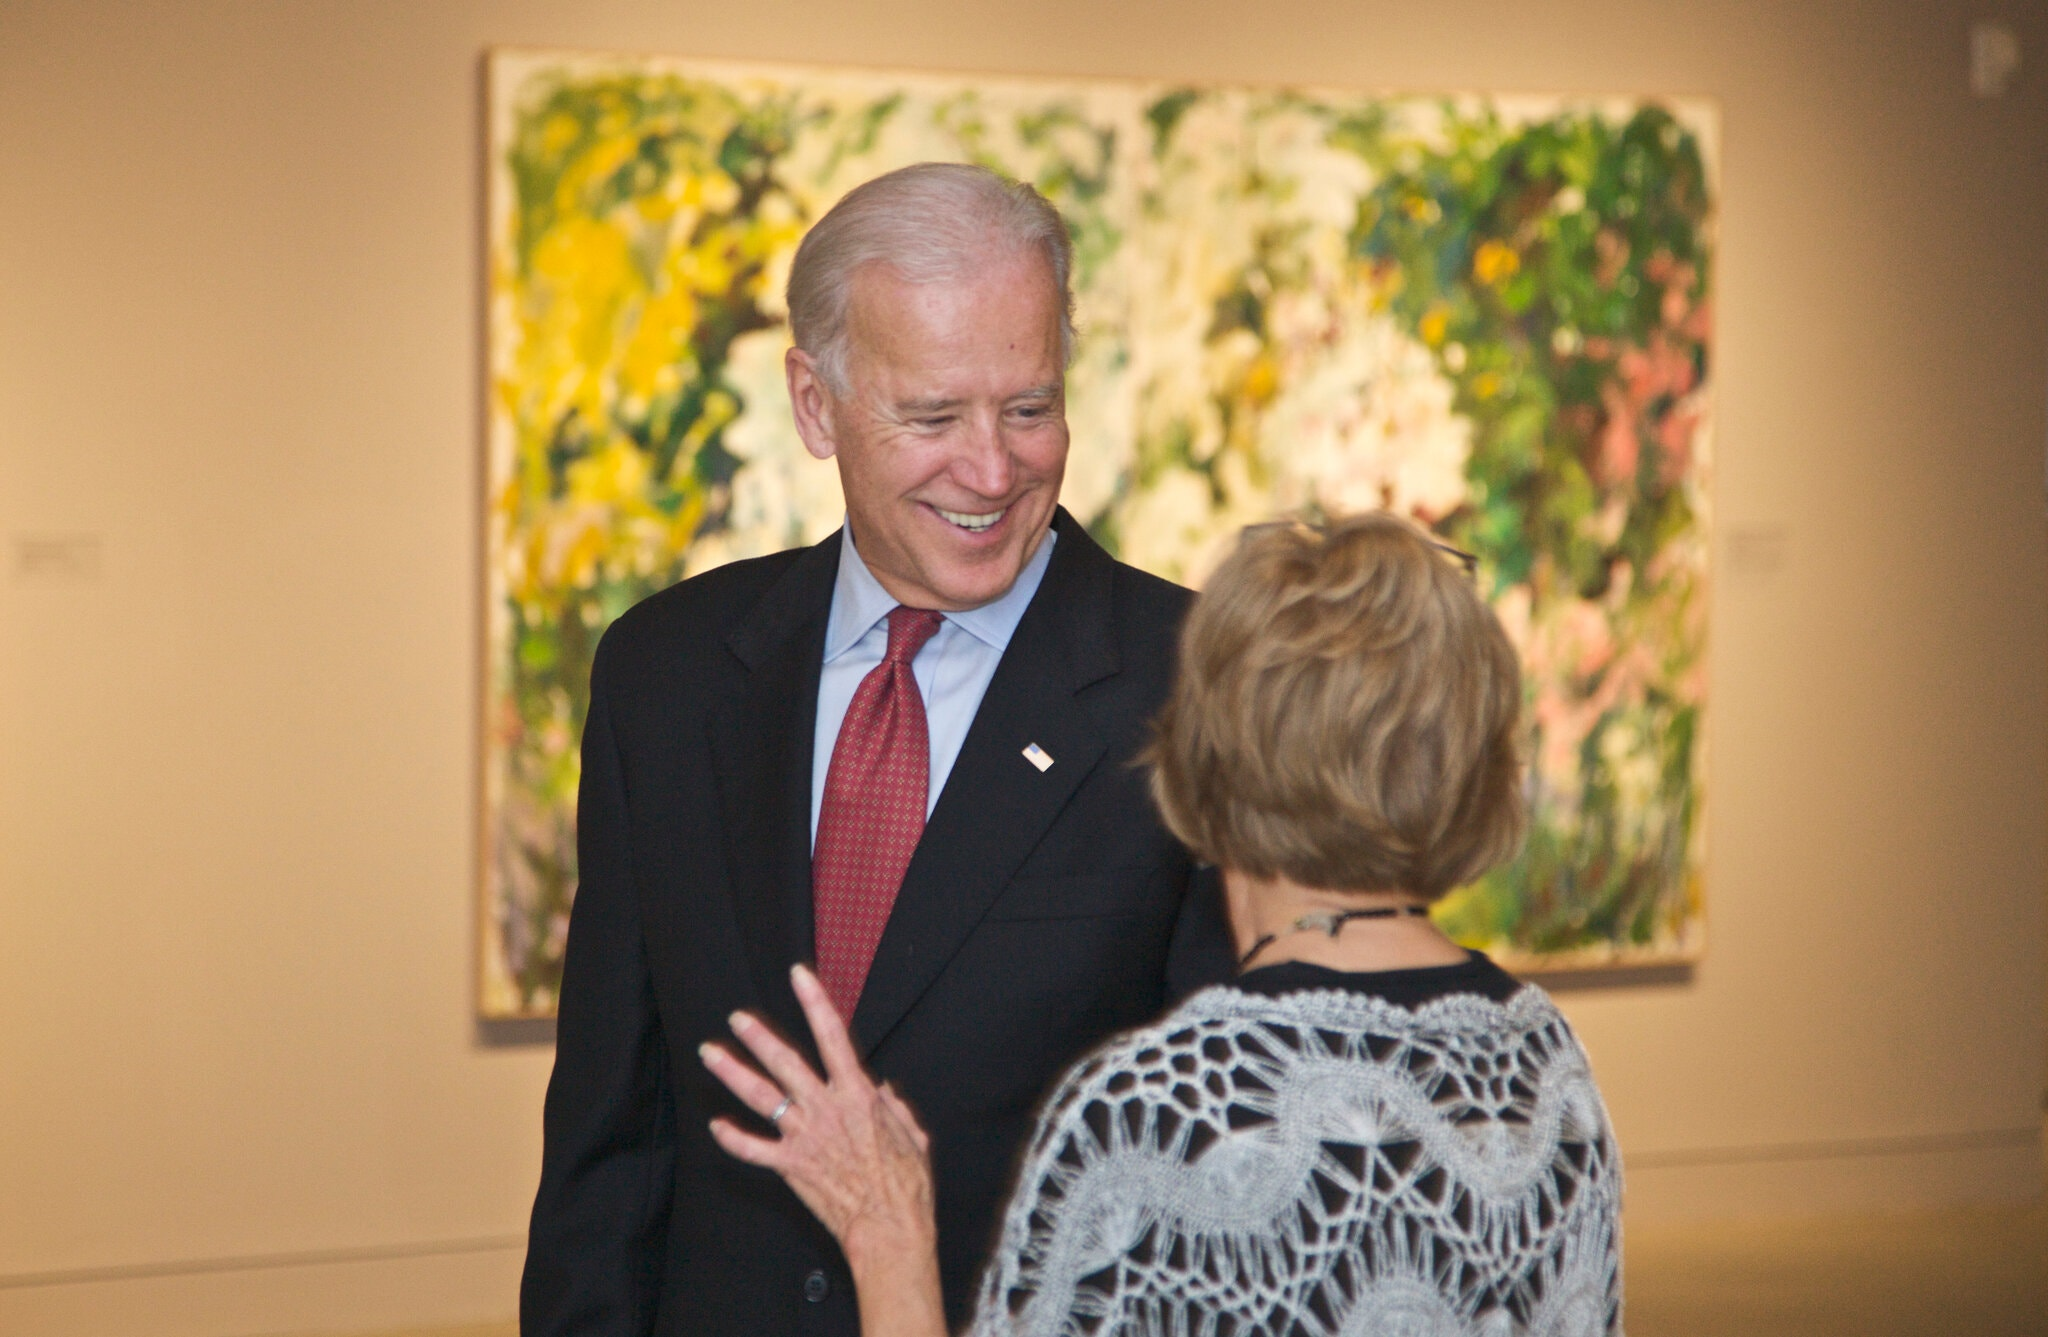 Joe Biden as an art aficionado